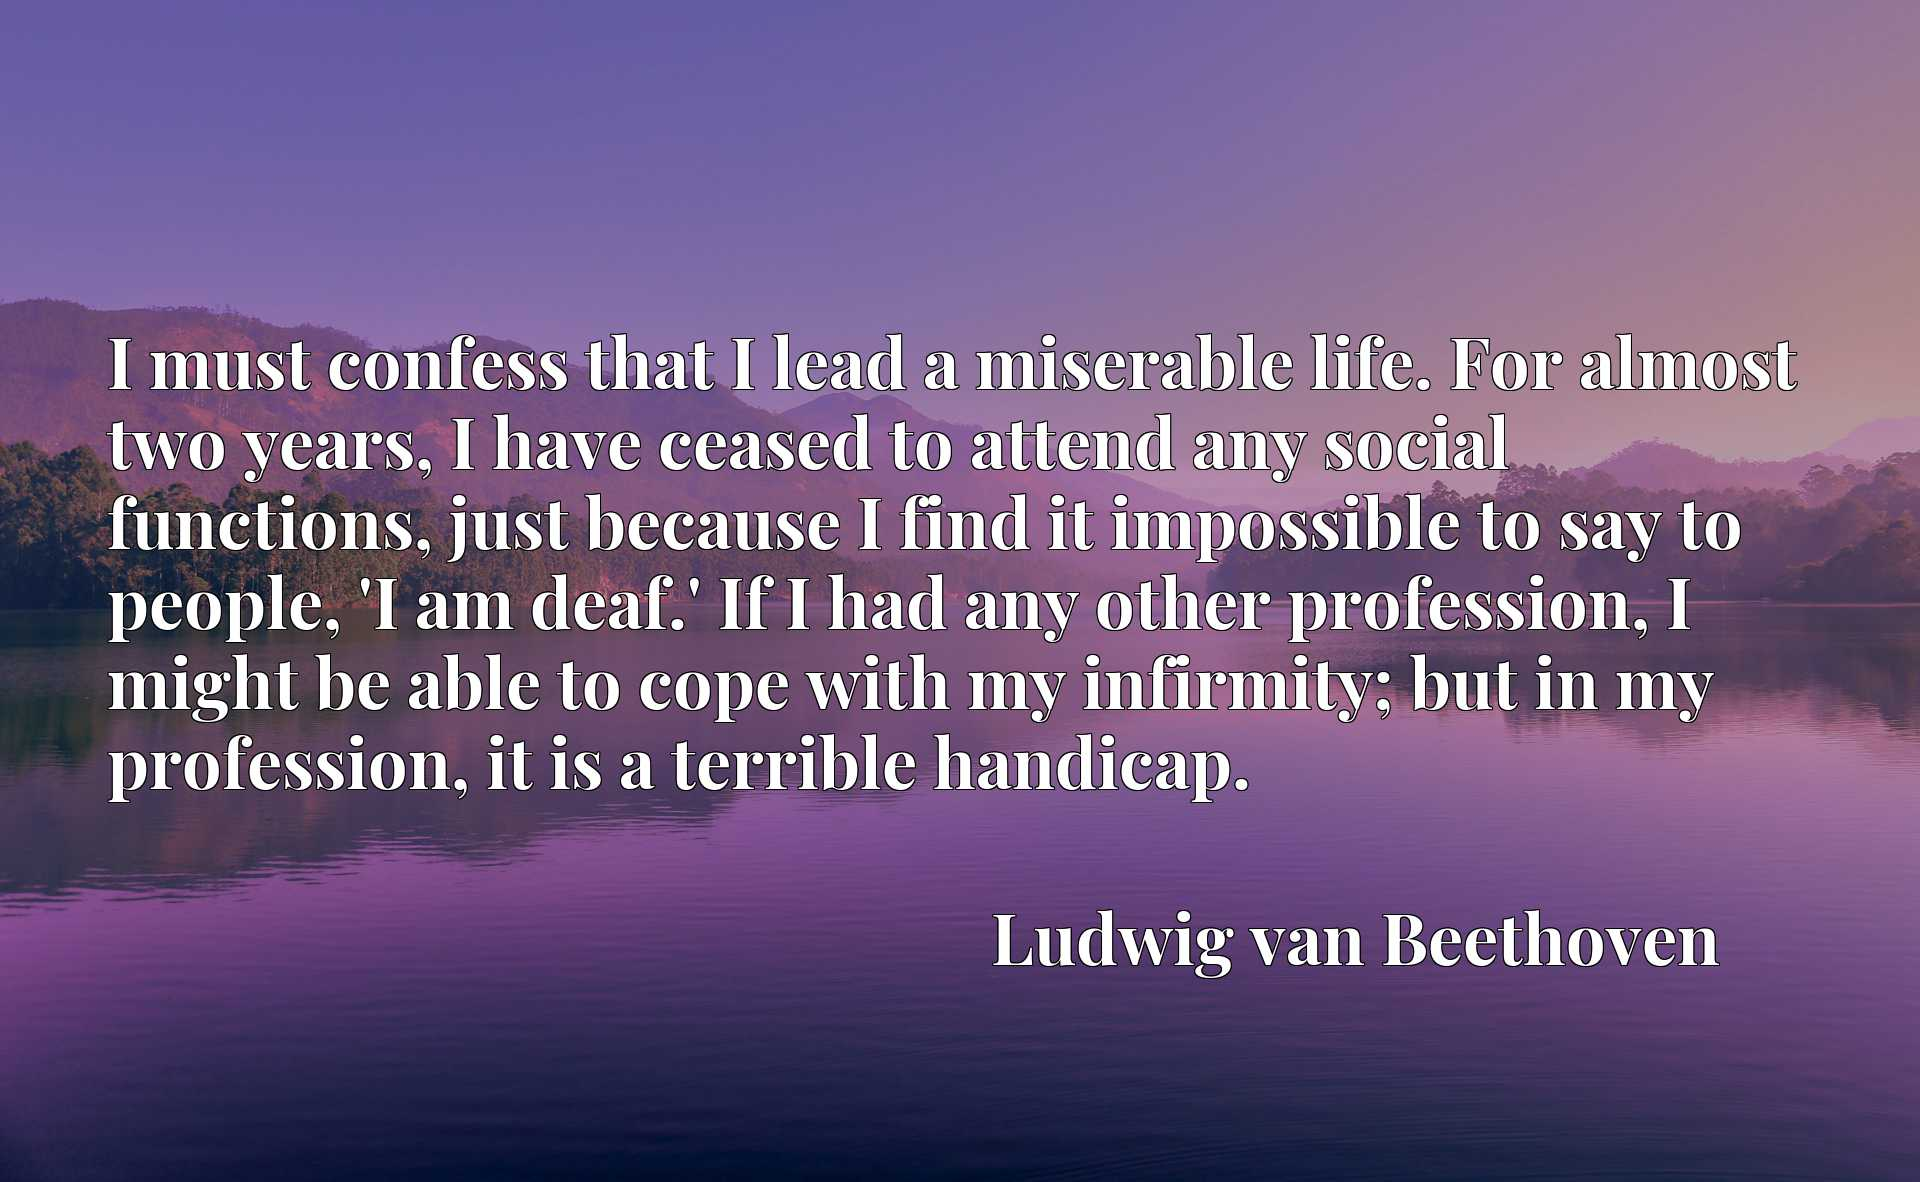 I must confess that I lead a miserable life. For almost two years, I have ceased to attend any social functions, just because I find it impossible to say to people, 'I am deaf.' If I had any other profession, I might be able to cope with my infirmity; but in my profession, it is a terrible handicap.